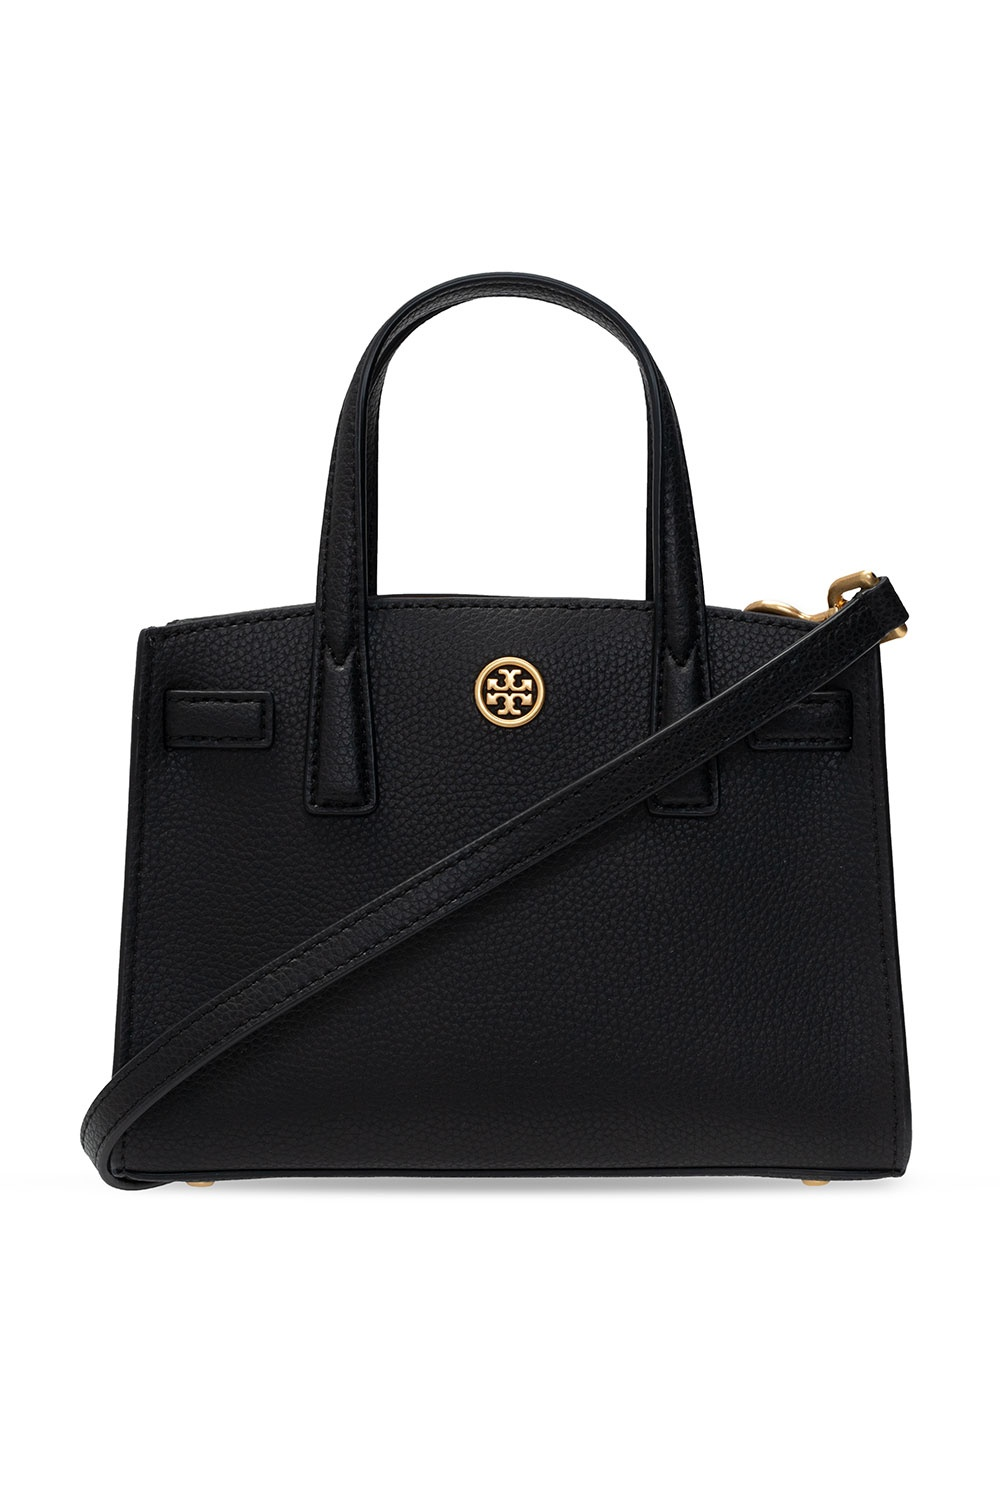 Tory Burch 'Walker' shoulder bag